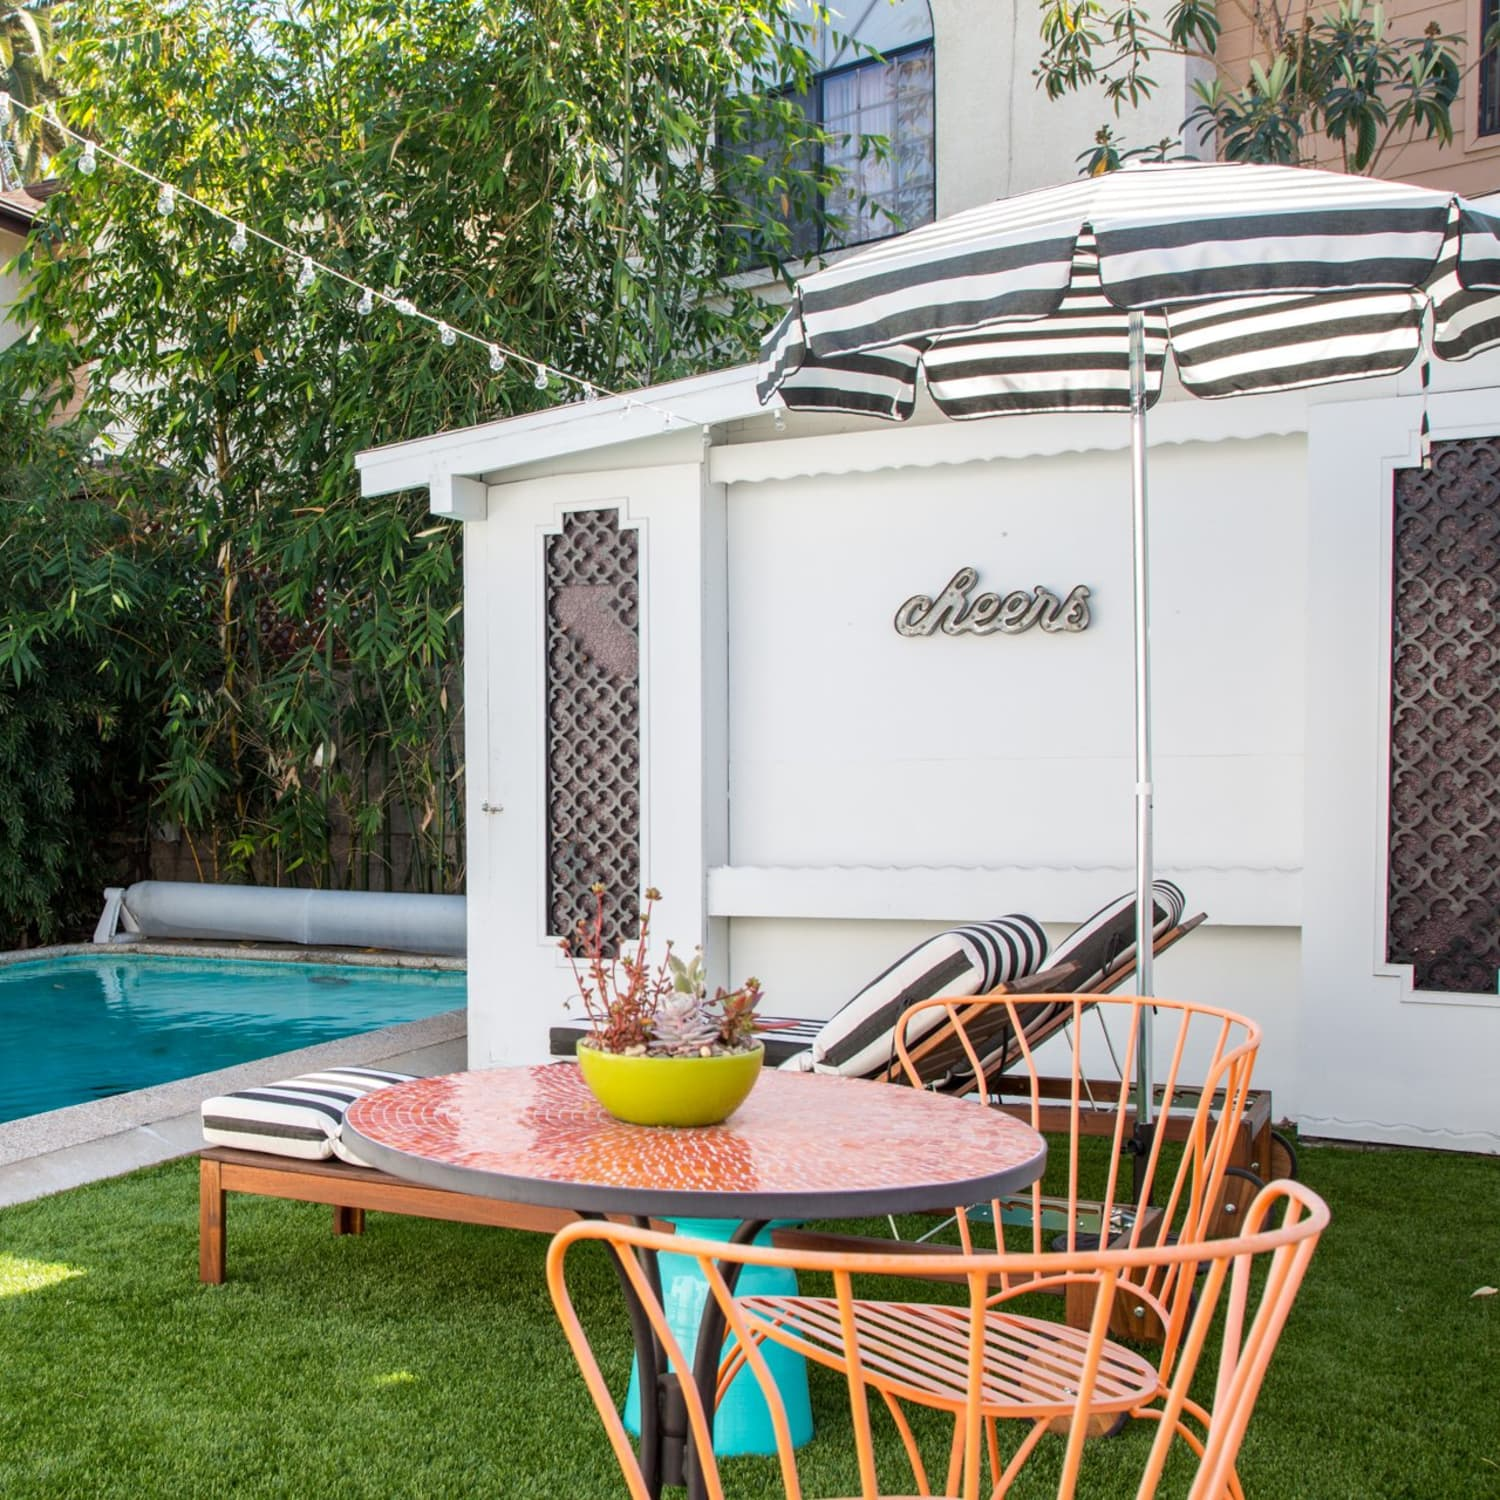 10 Small Backyard Pool Ideas How To Fit A Pool In A Small Yard Apartment Therapy